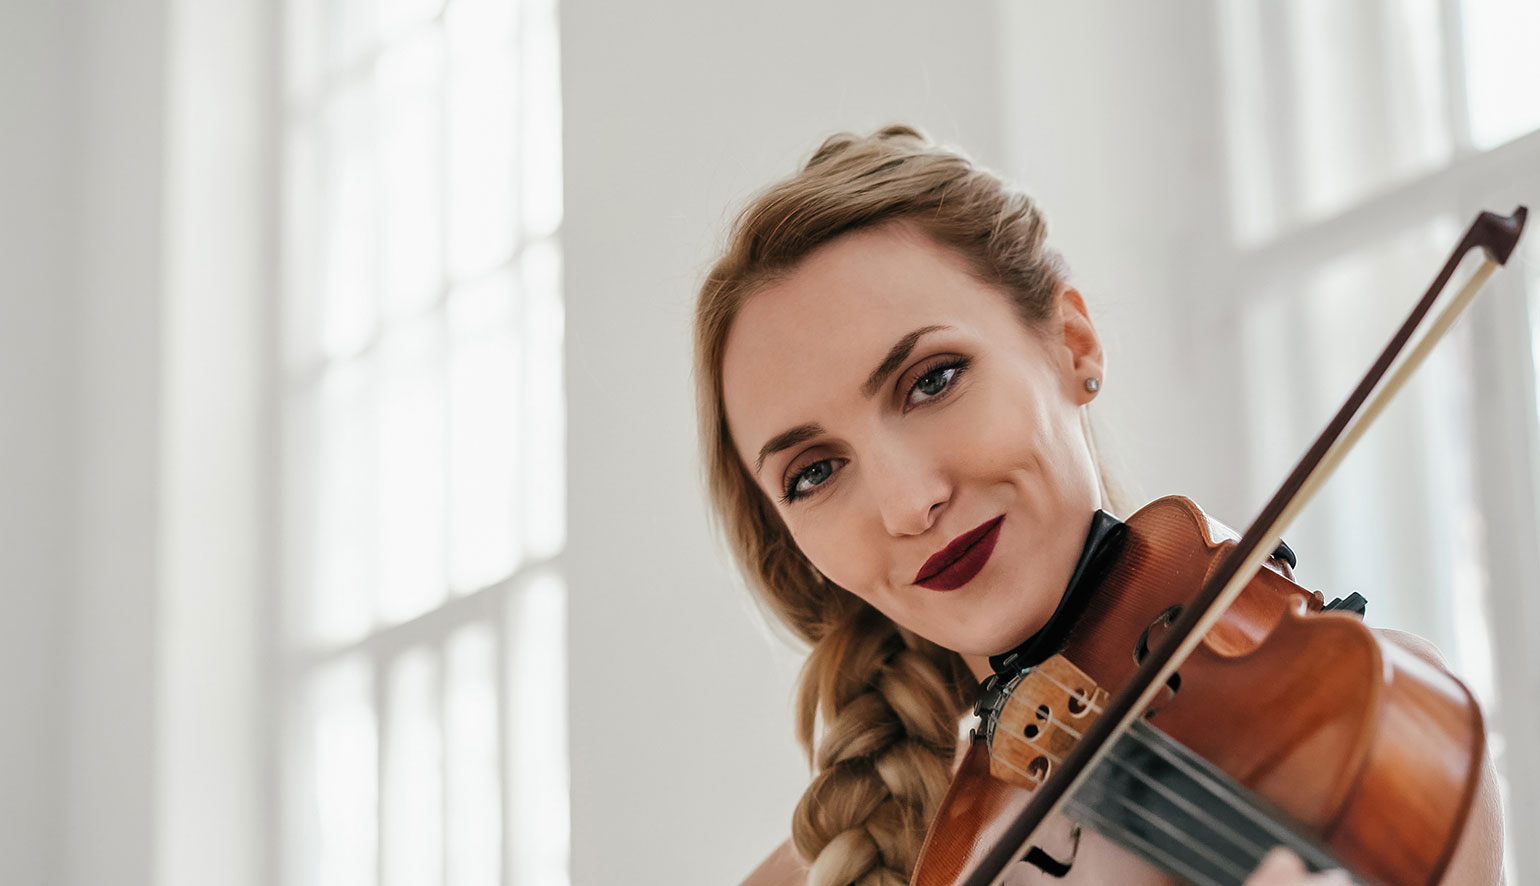 The prefect violin being played by a beautiful confident women